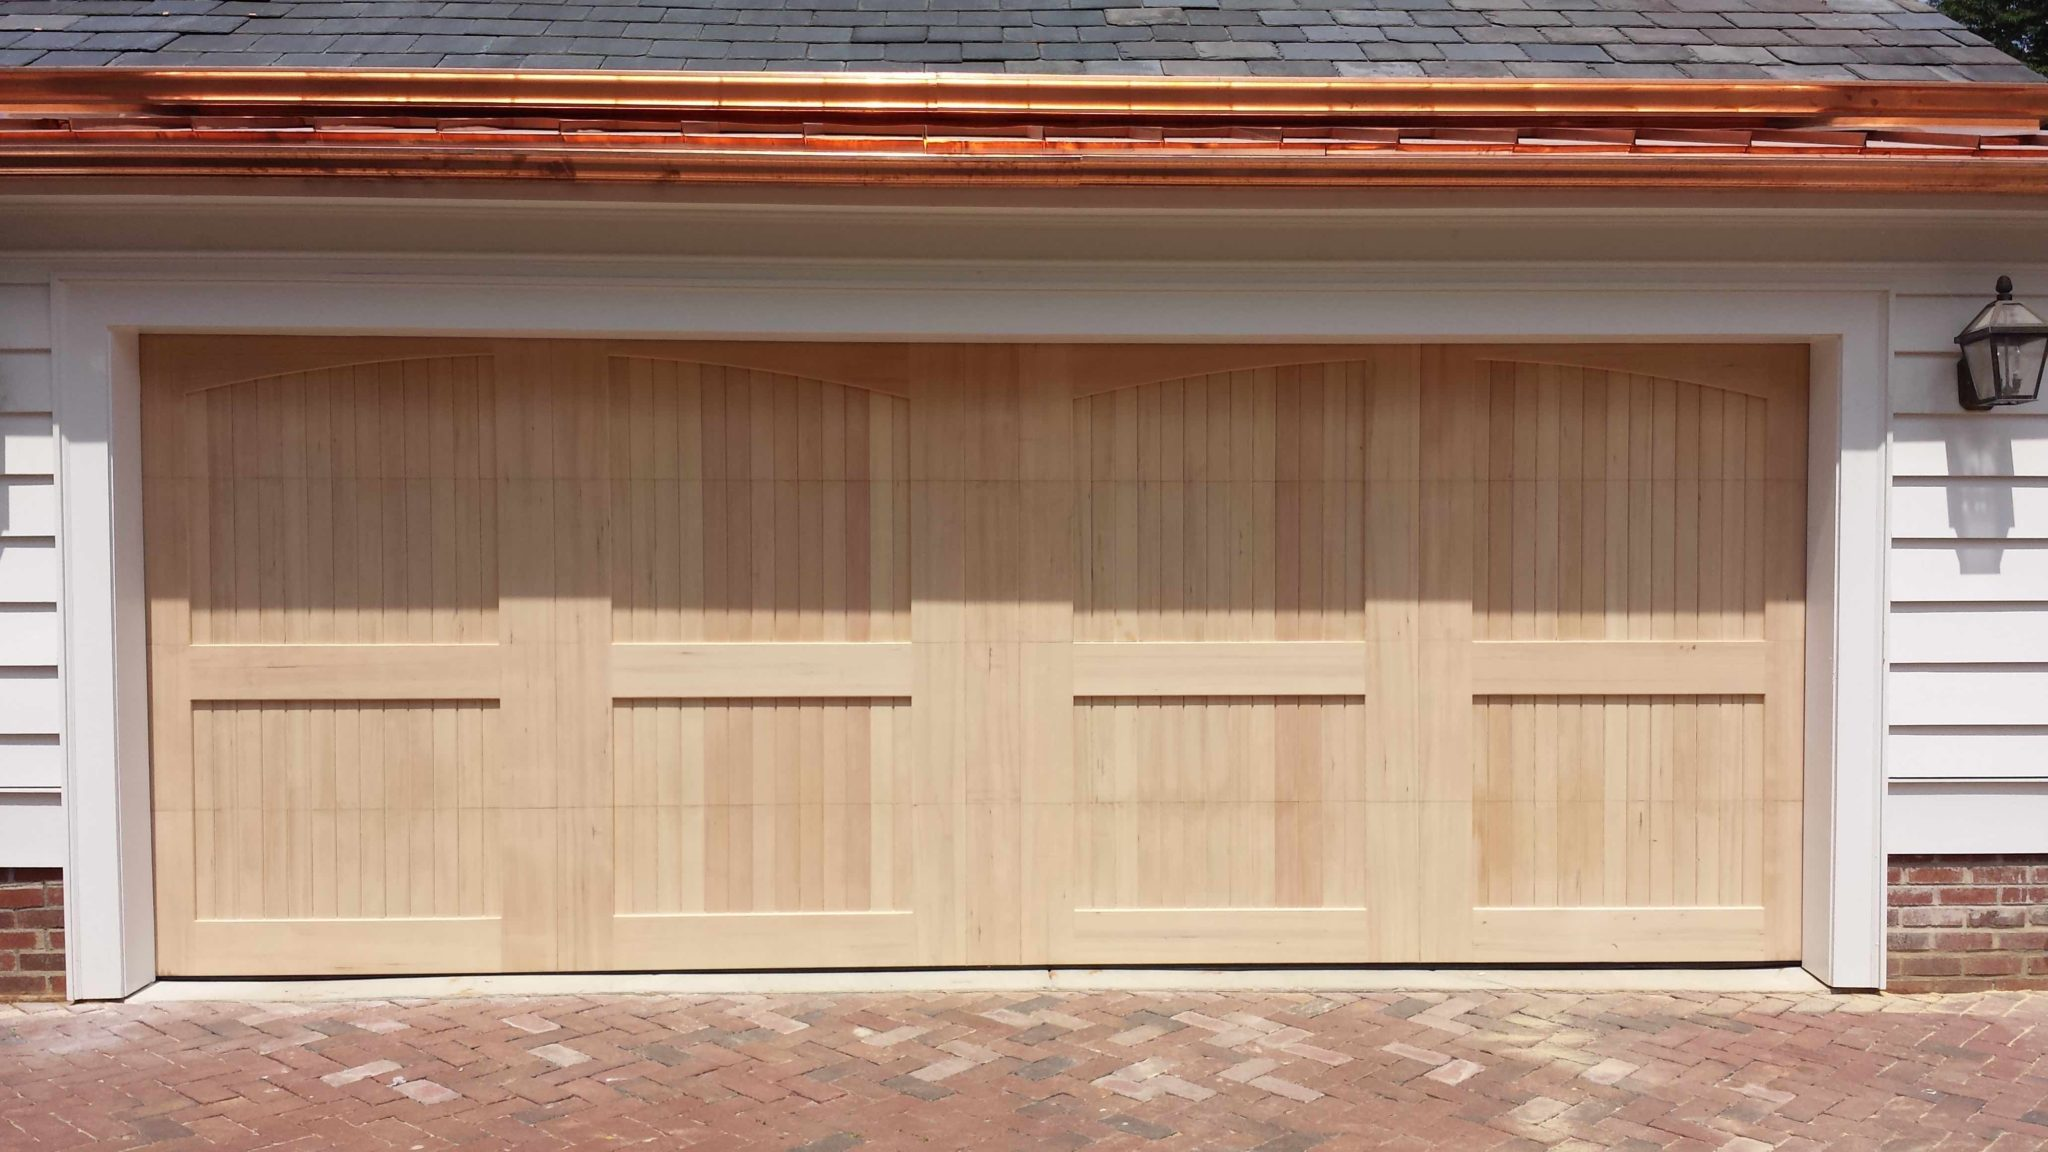 Garage doors and more charlotte nc gallery door design ideas estate garage doors charlotte nc a plus residential installation estate garage doors are the perfect accompaniment rubansaba